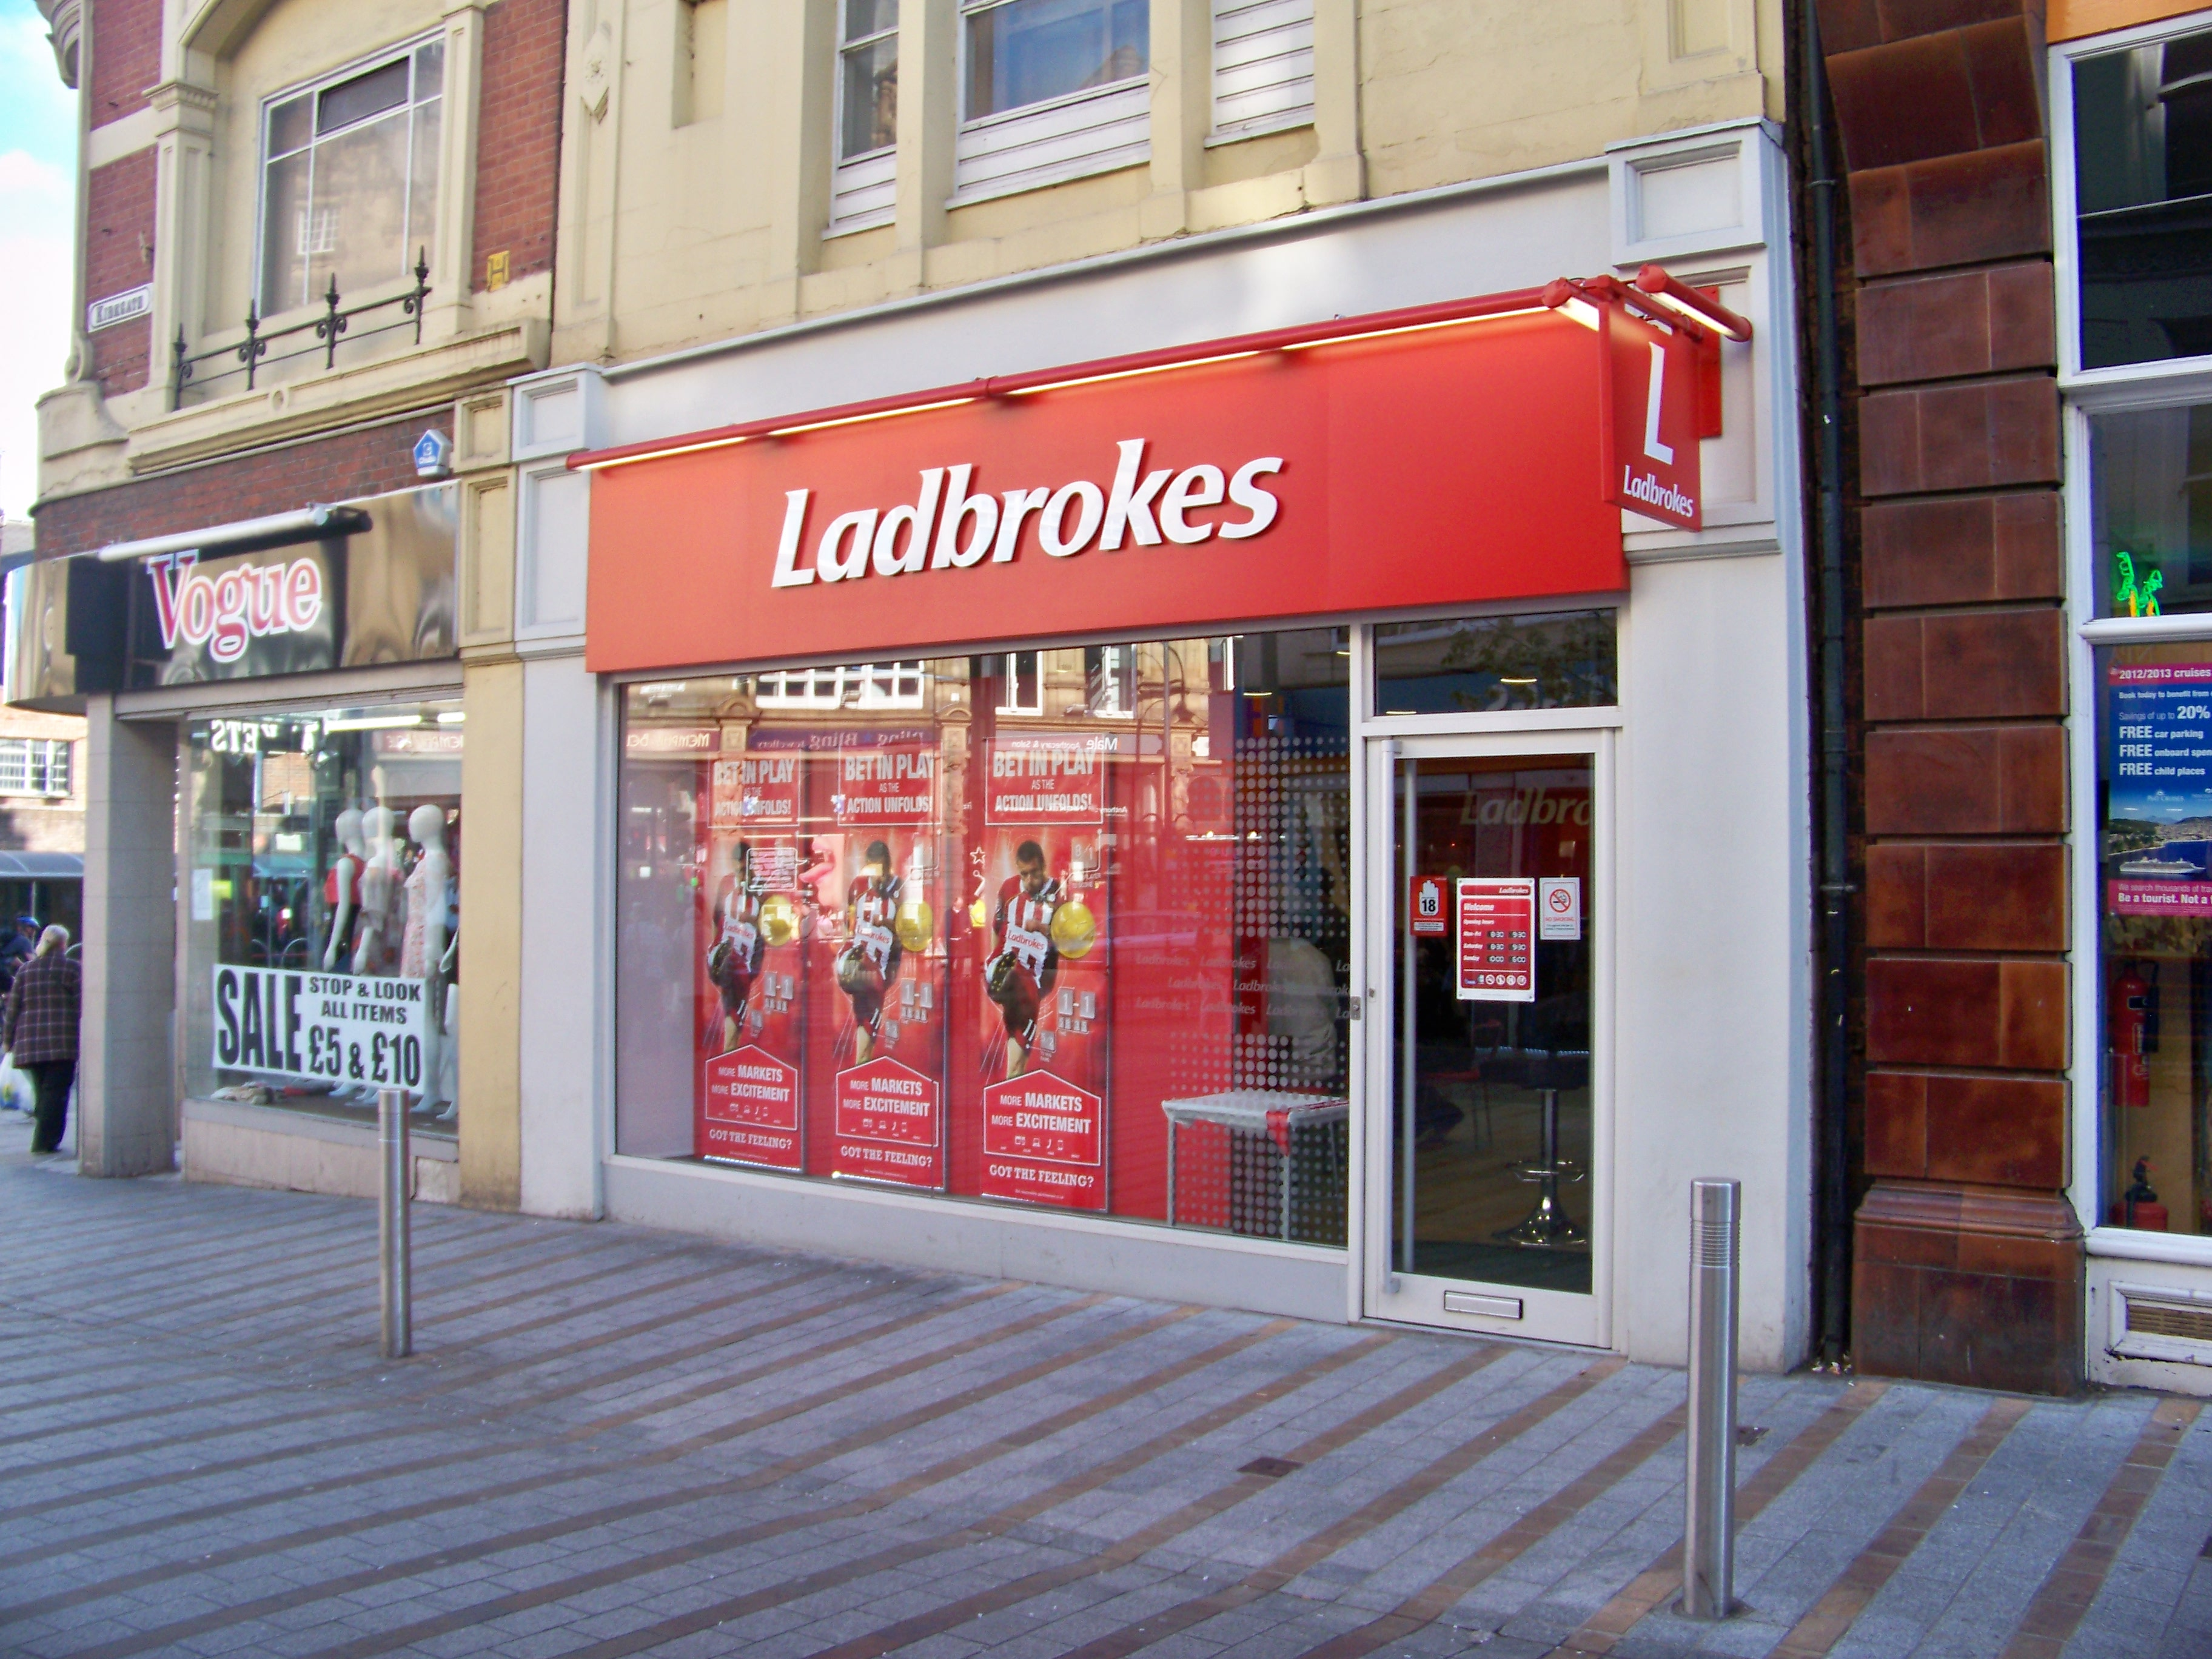 Coral Gala Performance ladbrokes plc senior management change advfn ladbrokes betting phone number ladbrokes poker social series